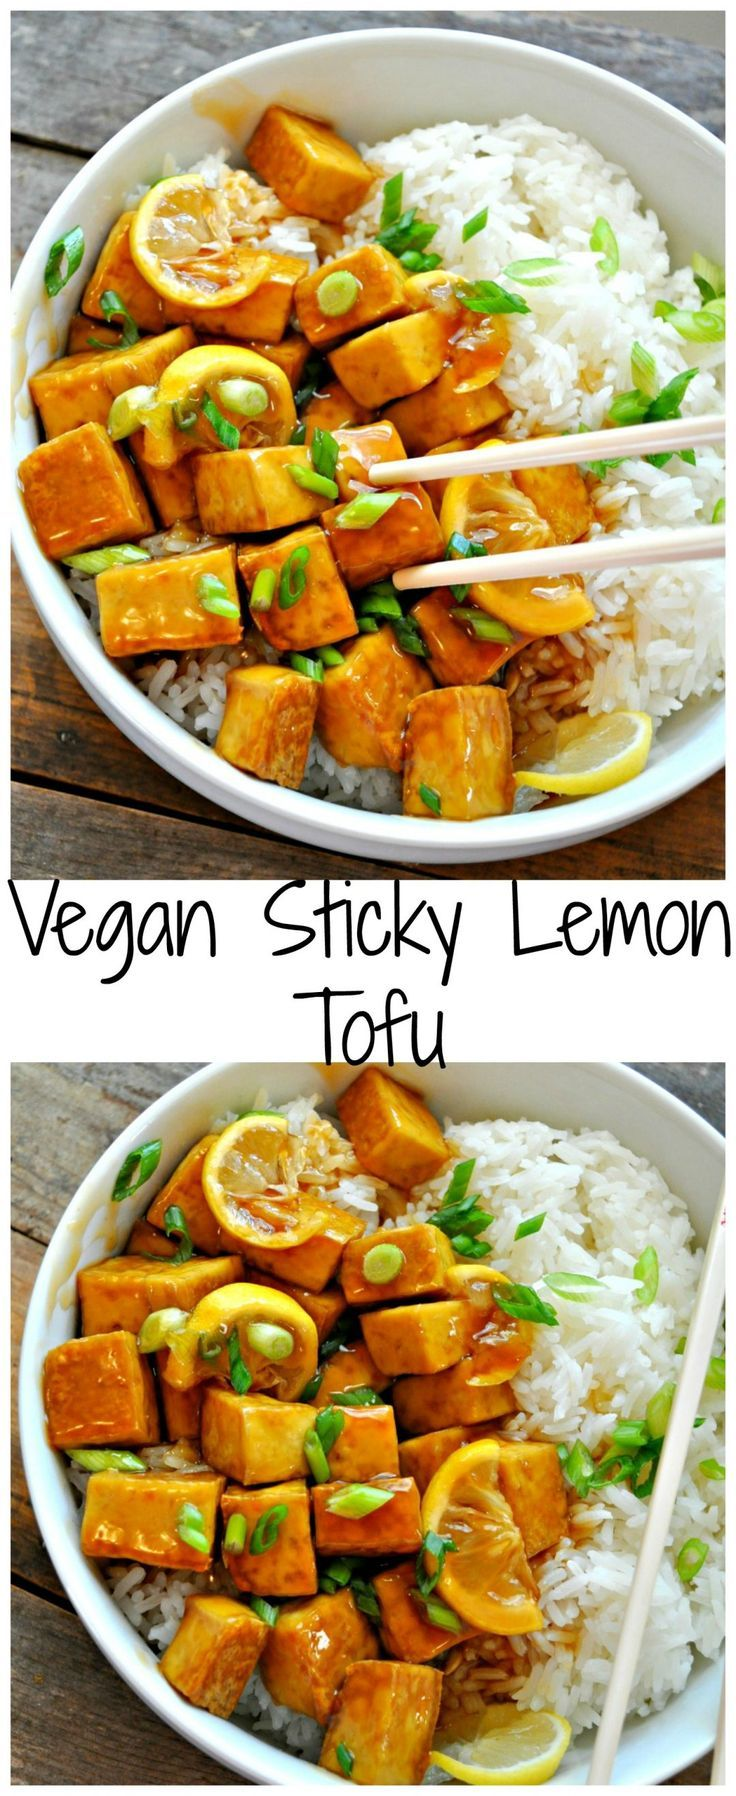 Vegan Sticky Lemon Tofu